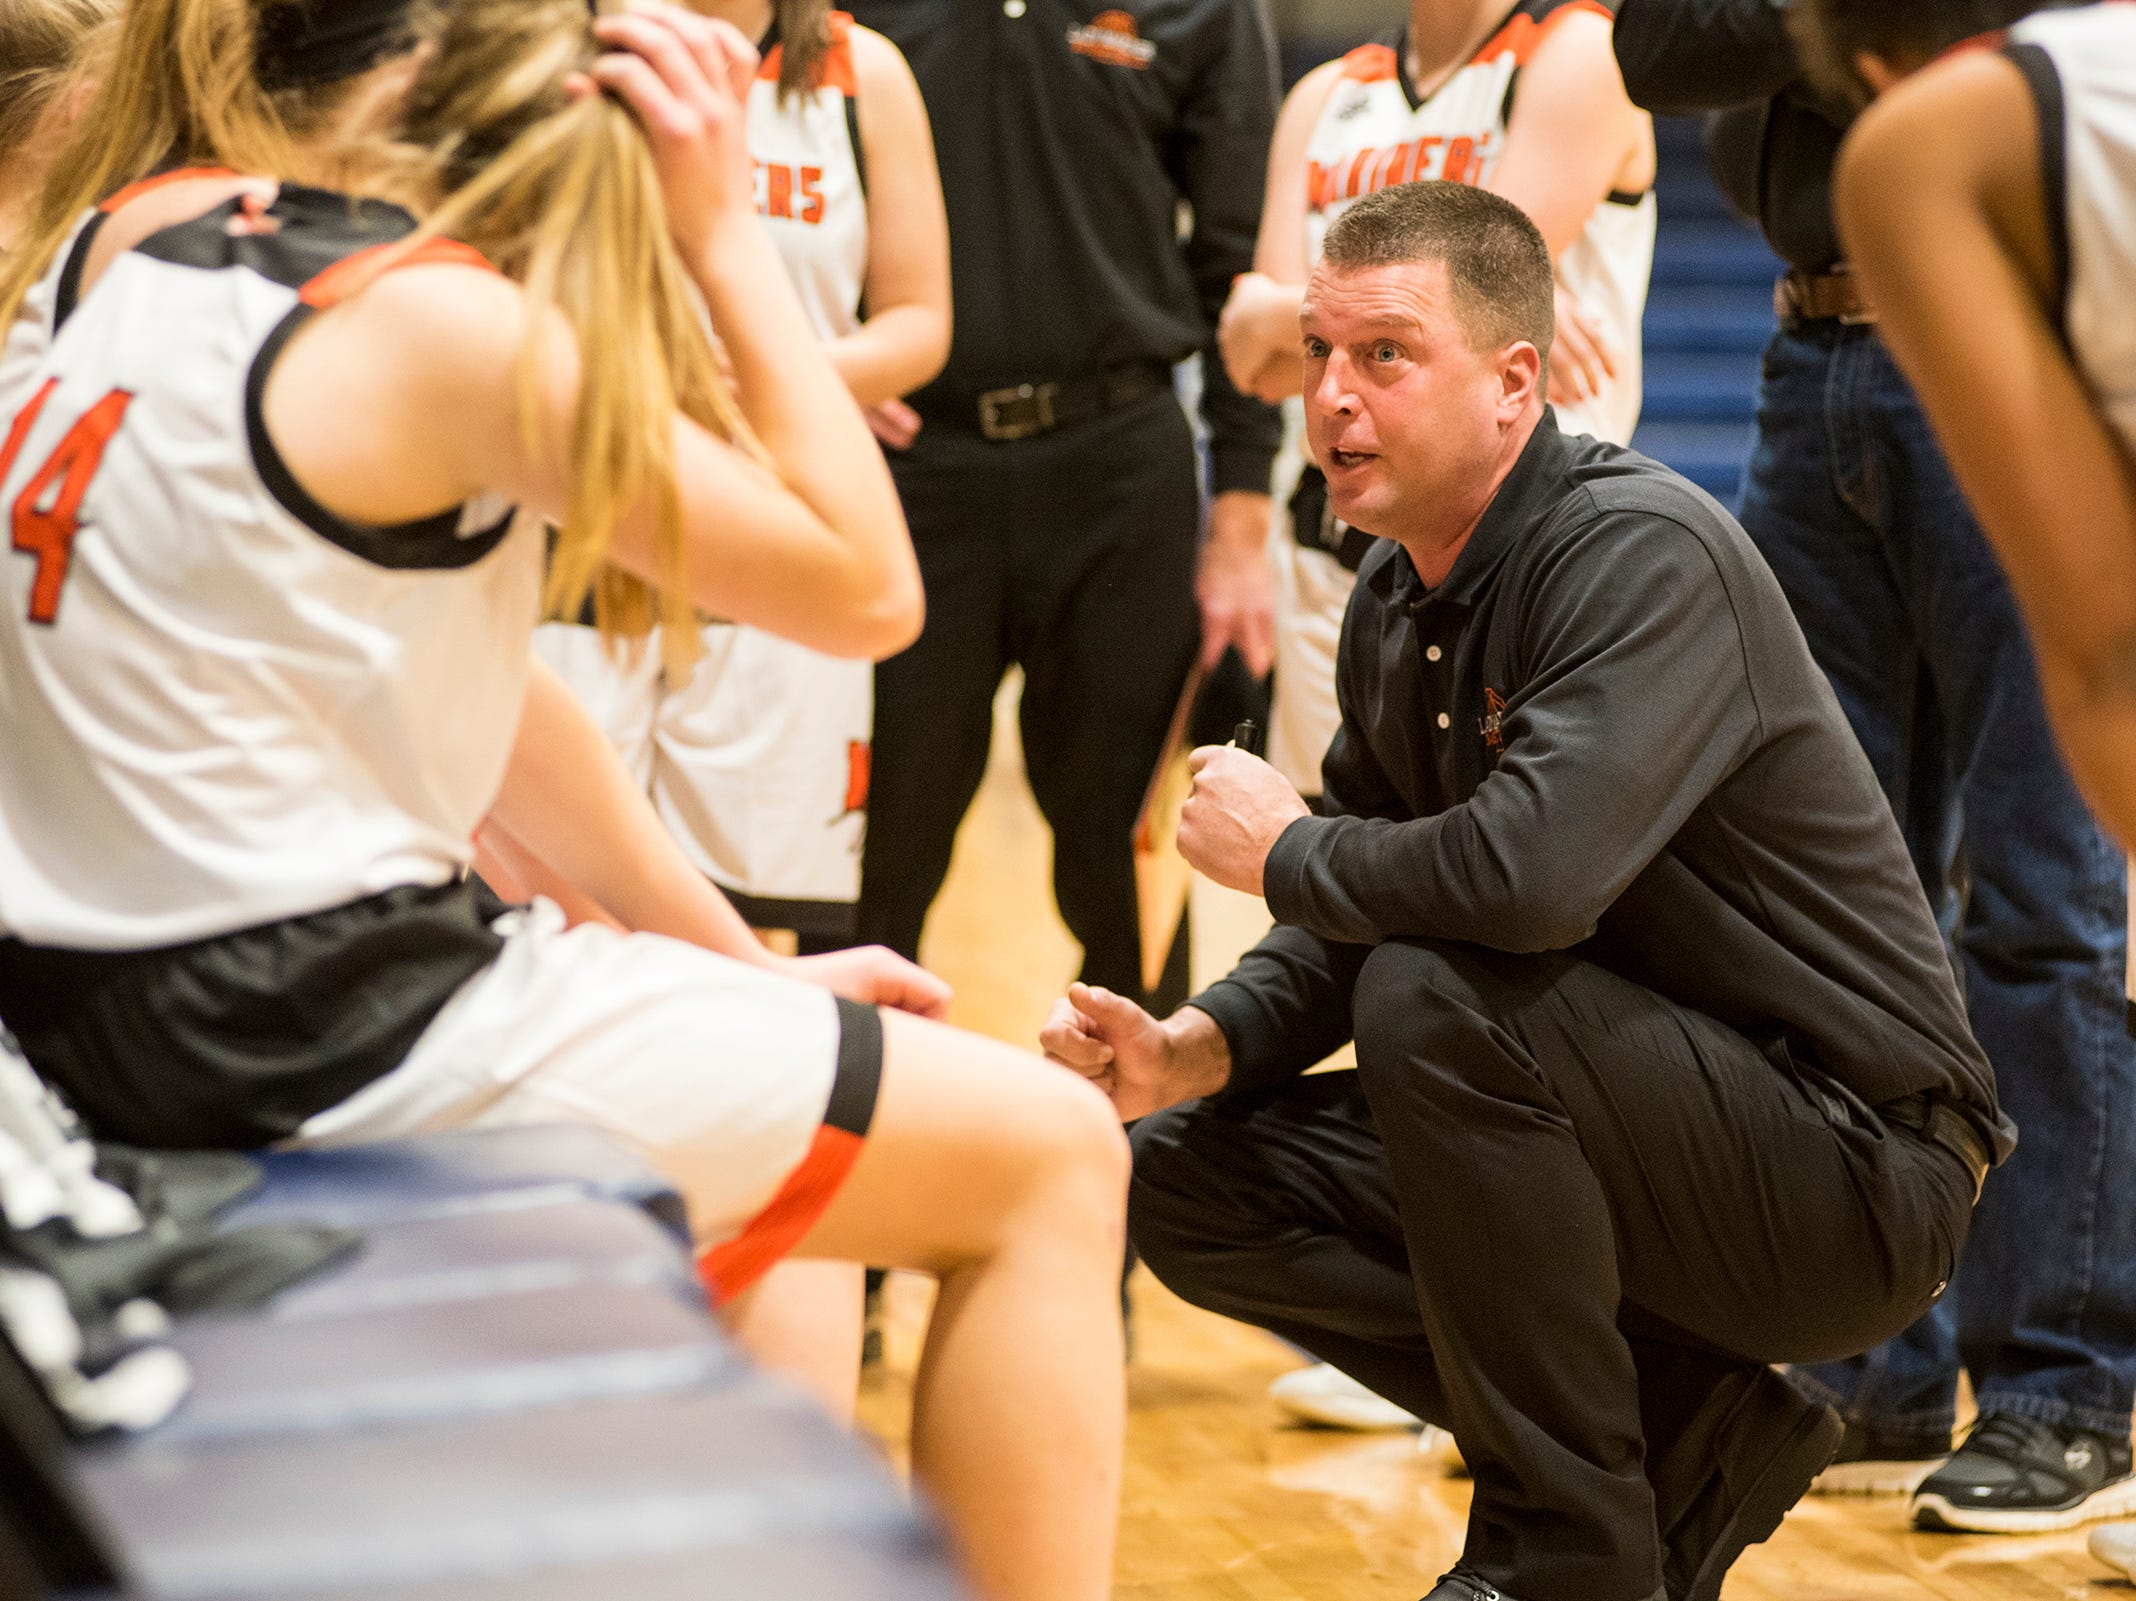 Marine City High School head basketball coach Jeff Austin talks to the team during a time out in their SC4 Holiday Basketball Showcase game against Imlay City High School Thursday, Dec. 27, 2018 at the SC4 Fieldhouse.